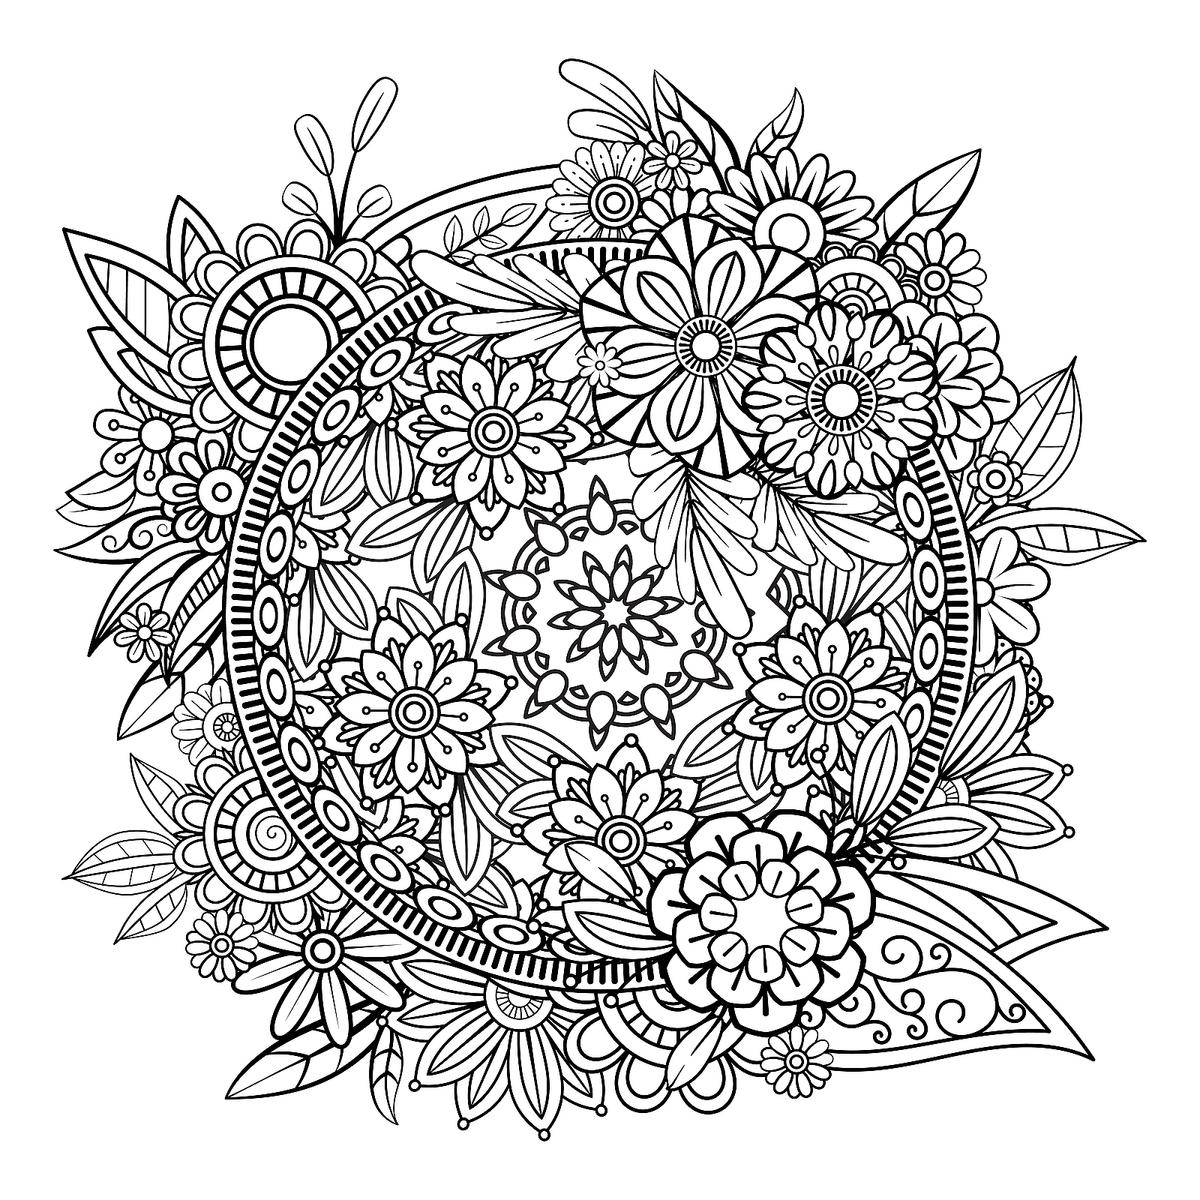 Mandala Coloring Pages: Printable Coloring Pages of ...